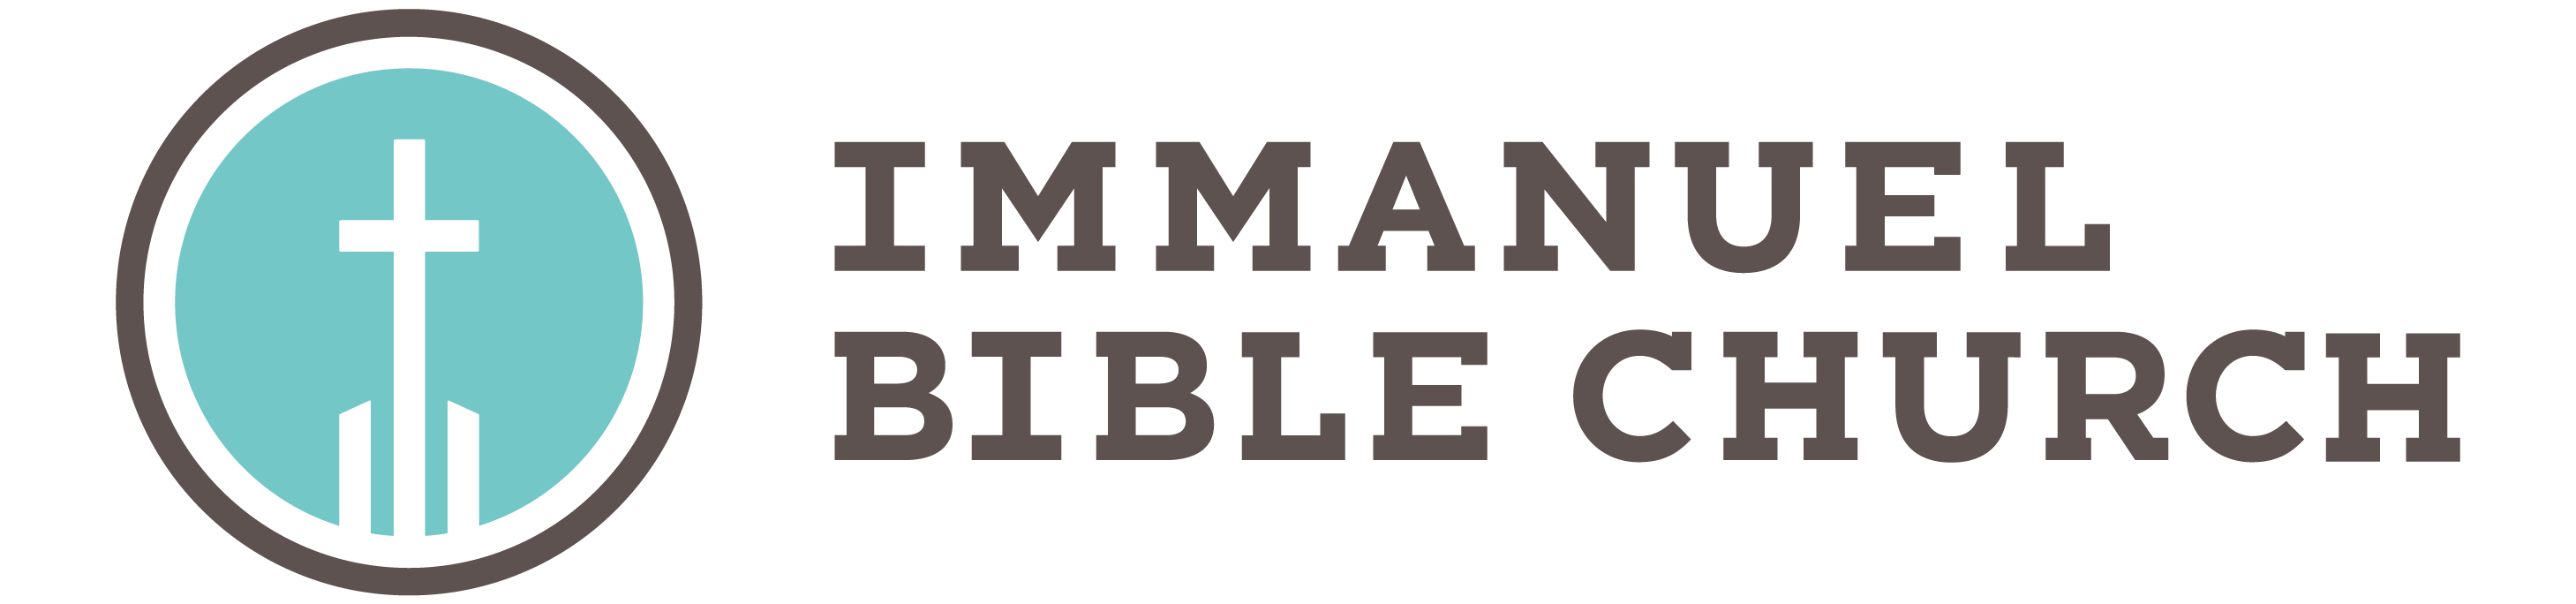 Immanuel Bible Church